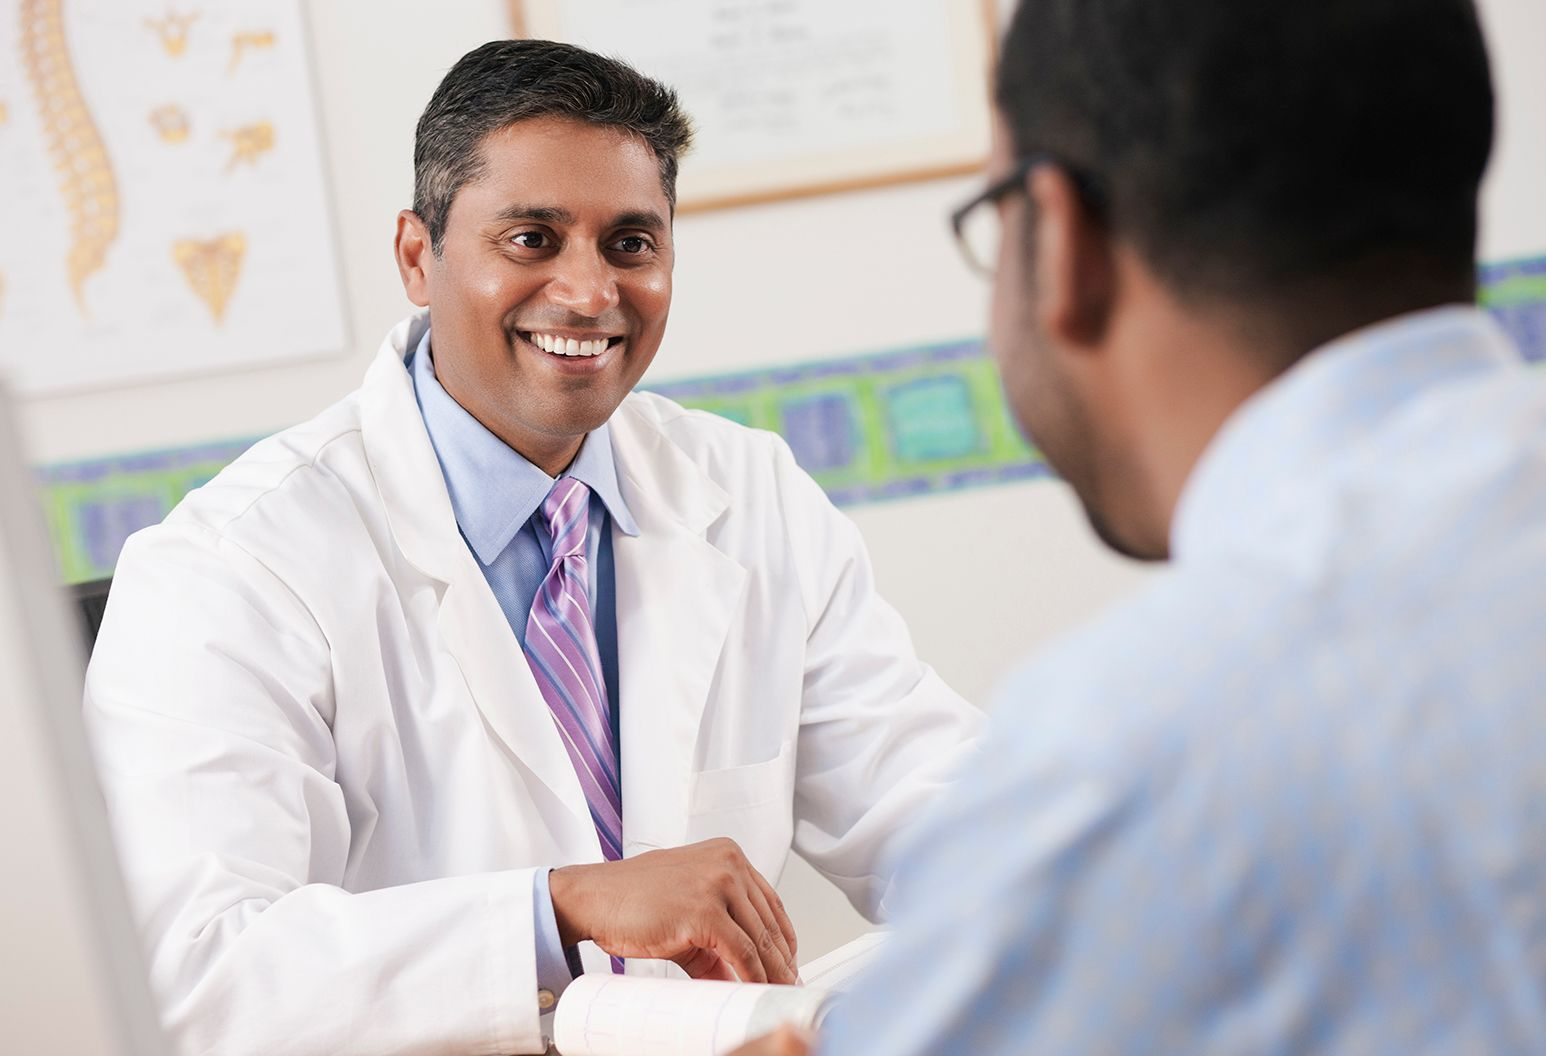 Male doctor smiling with a patient.